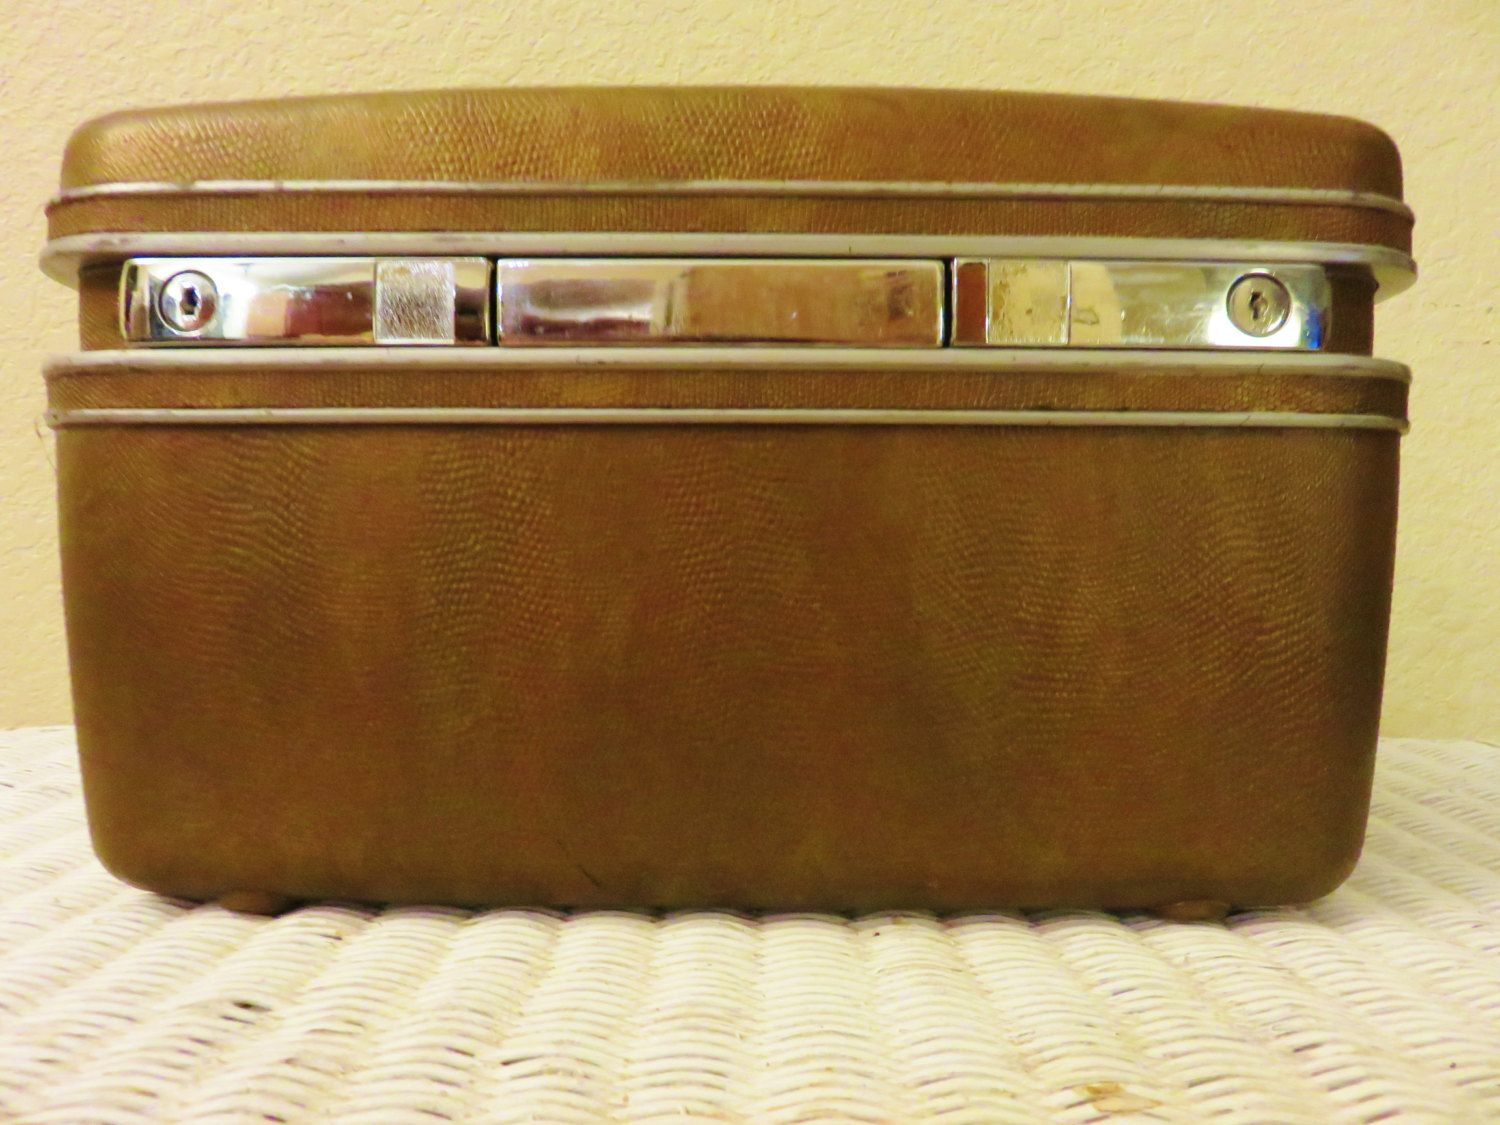 Vintage Train Case, Small Suitcase, 1960s Vintage Luggage, Hard Side Overnighter, Green Leather Carry Case, Cosmetic craft case by GinnysGirlsTreasures on Etsy